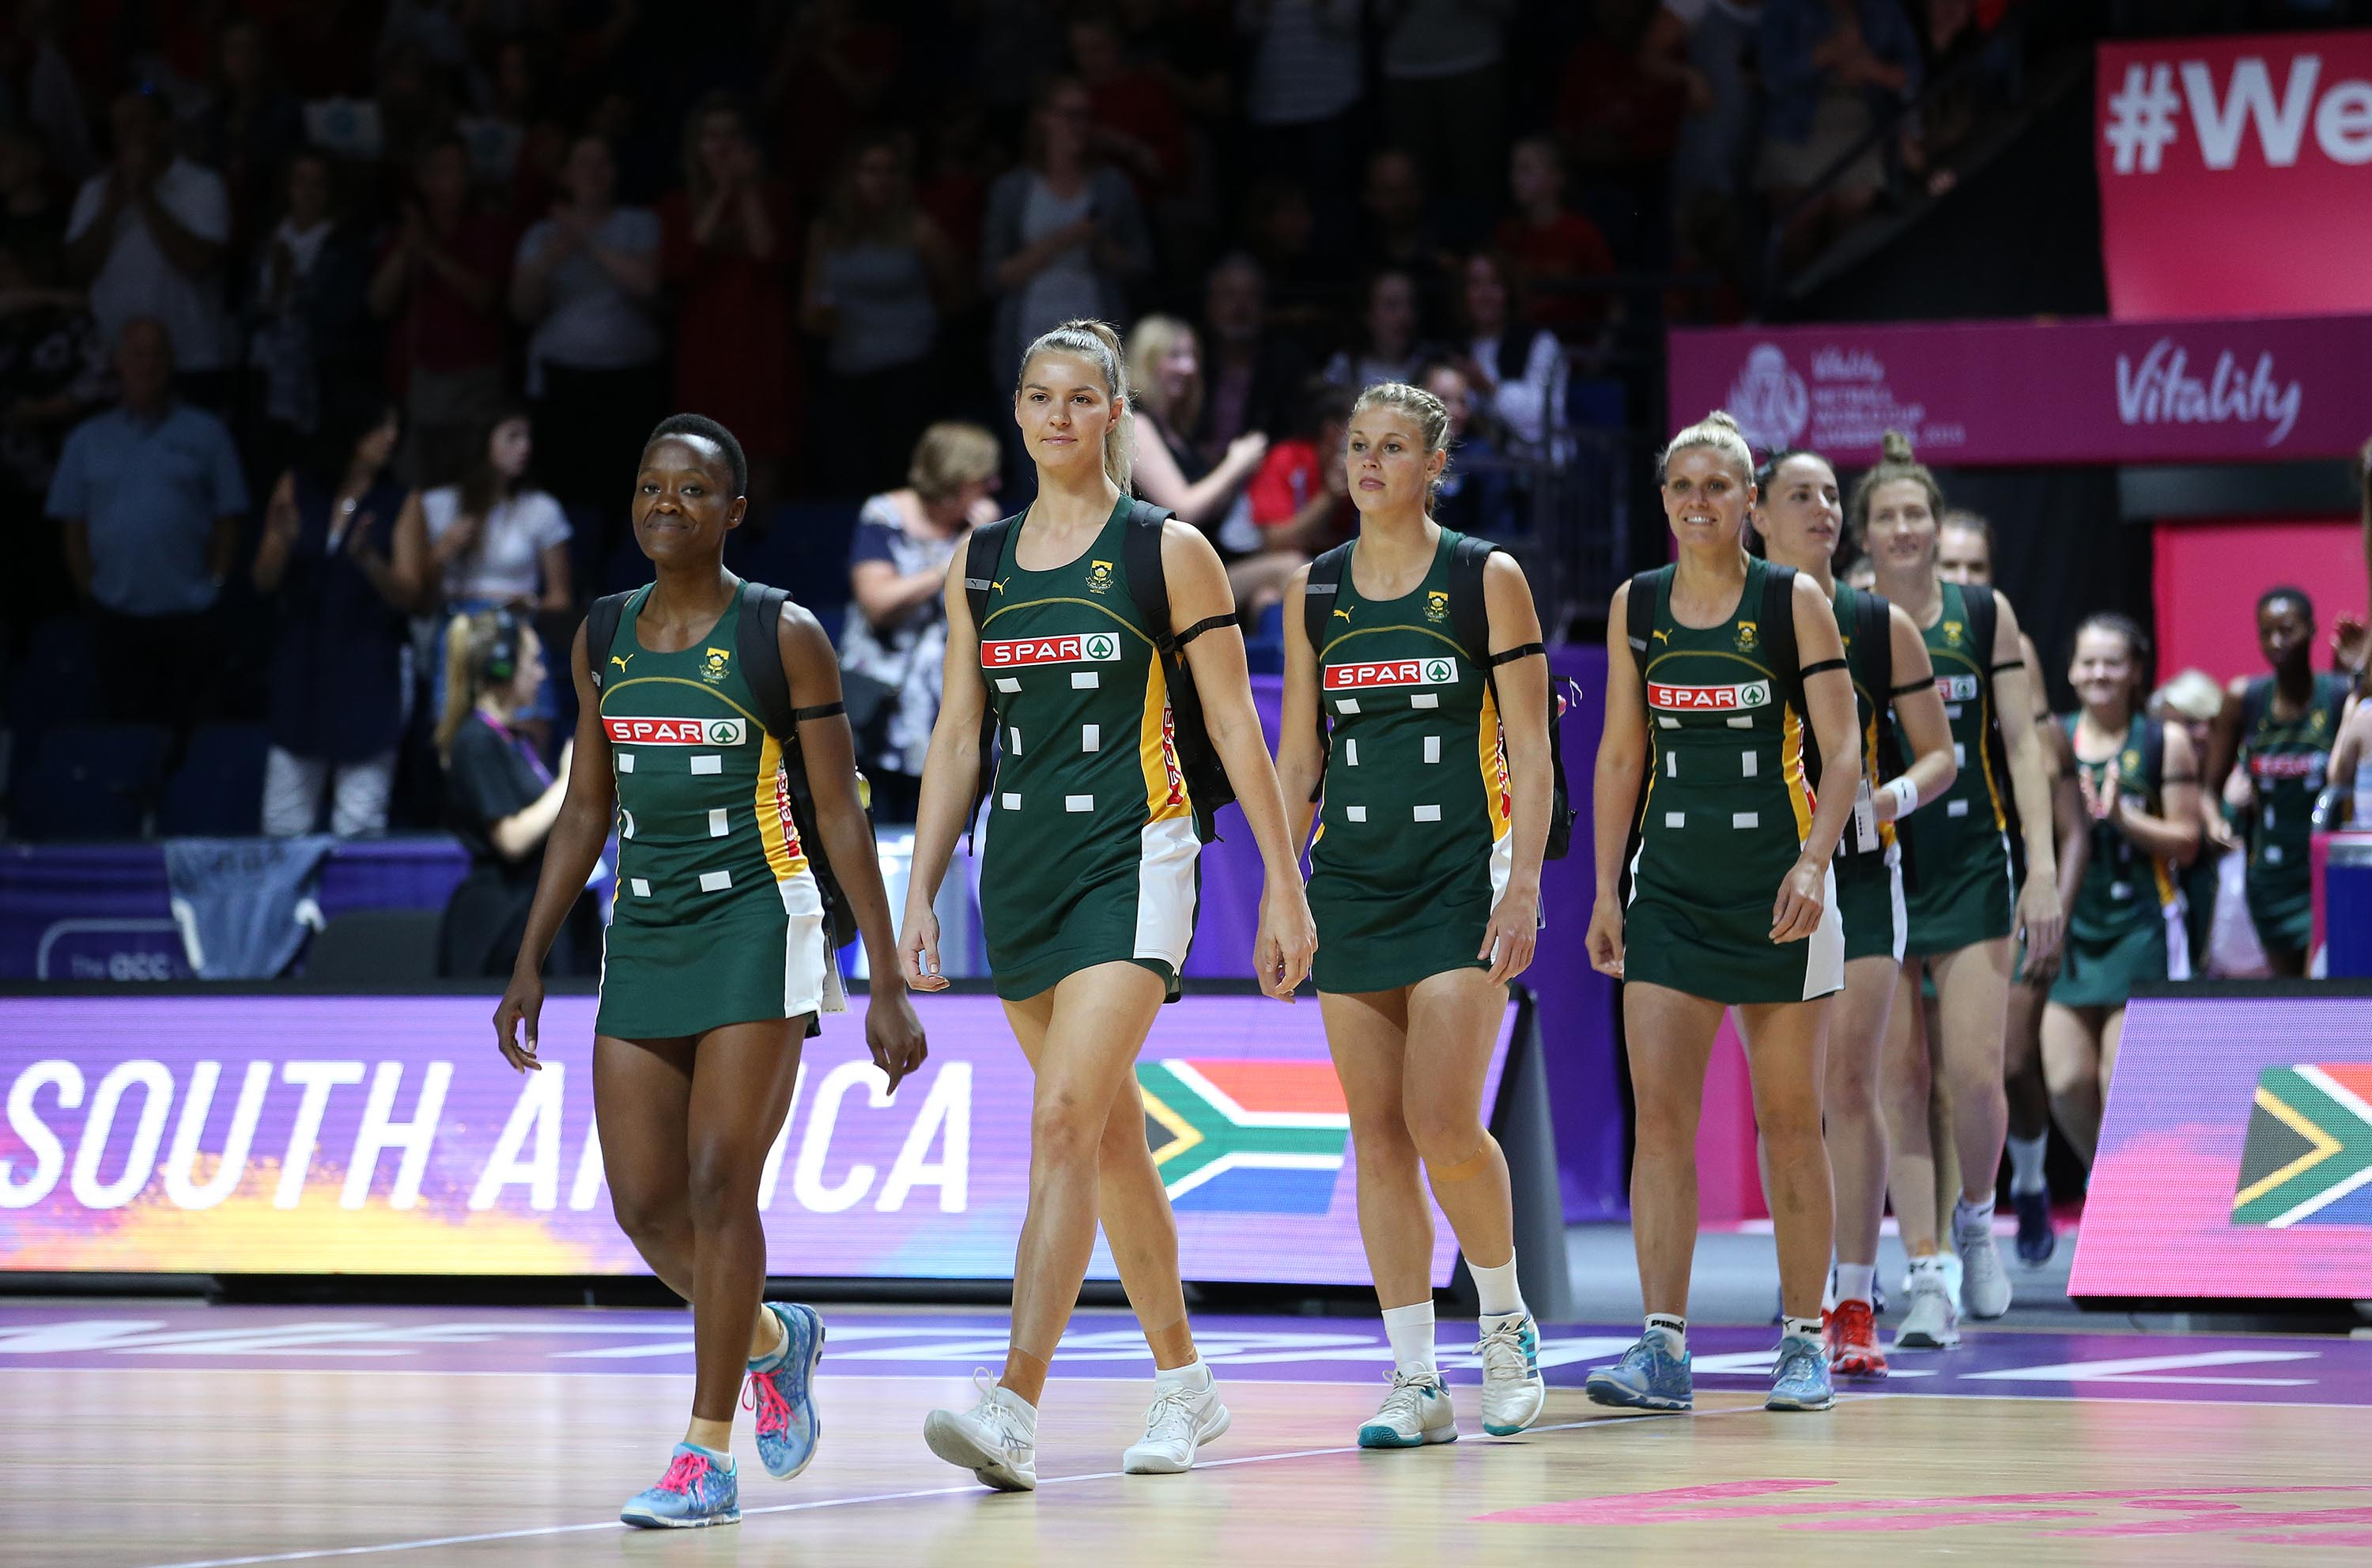 18 July 2019: The Spar Proteas take to the court for their Vitality Netball World Cup match against England at M&S Bank Arena in Liverpool, United Kingdom. (Photograph by Reg Caldecott/Gallo Images)